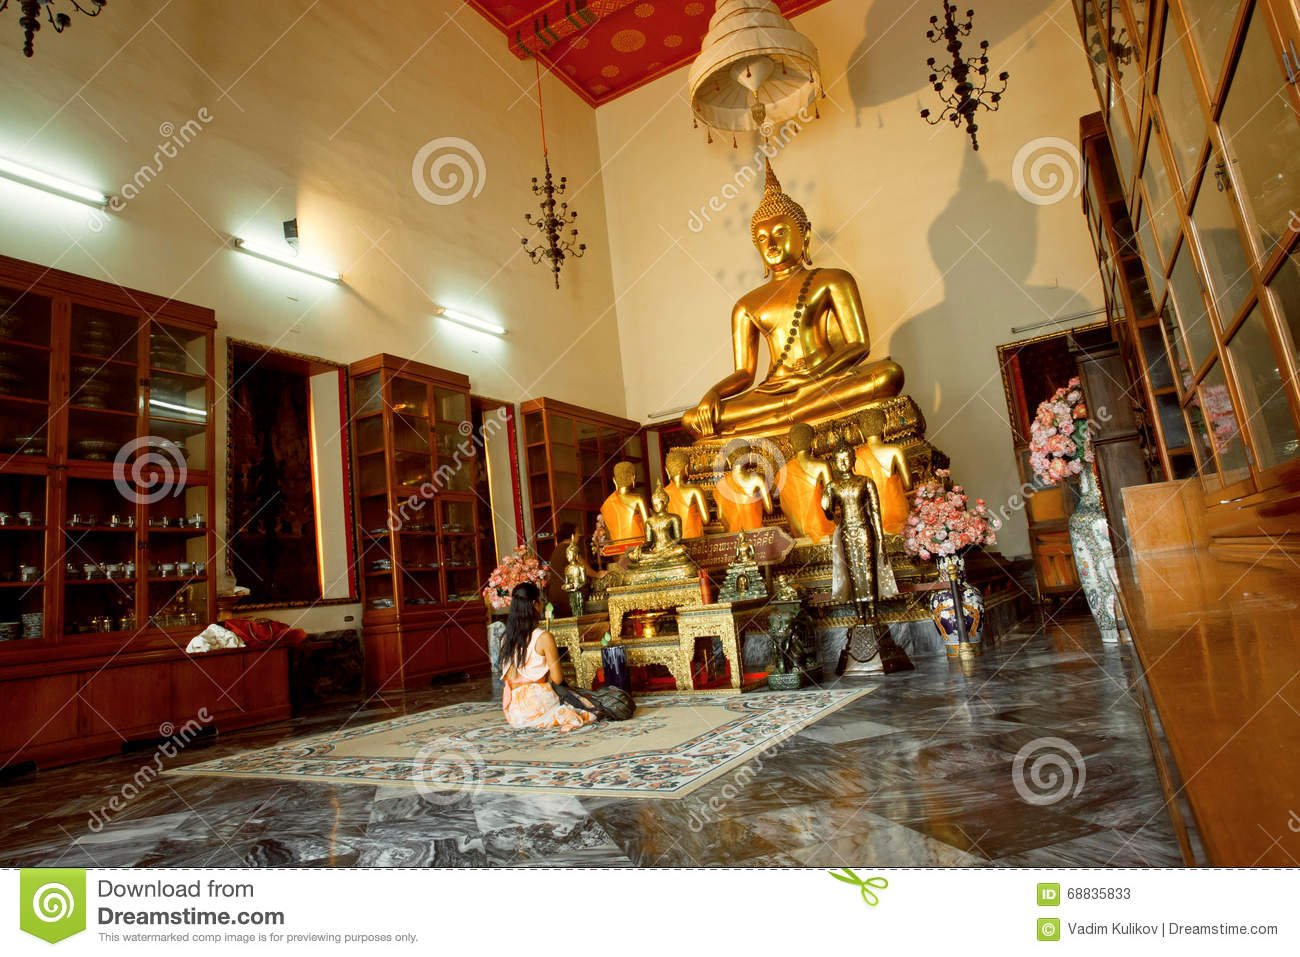 Woman Praying Past Buddha Statue Inside Small Temple Room Of